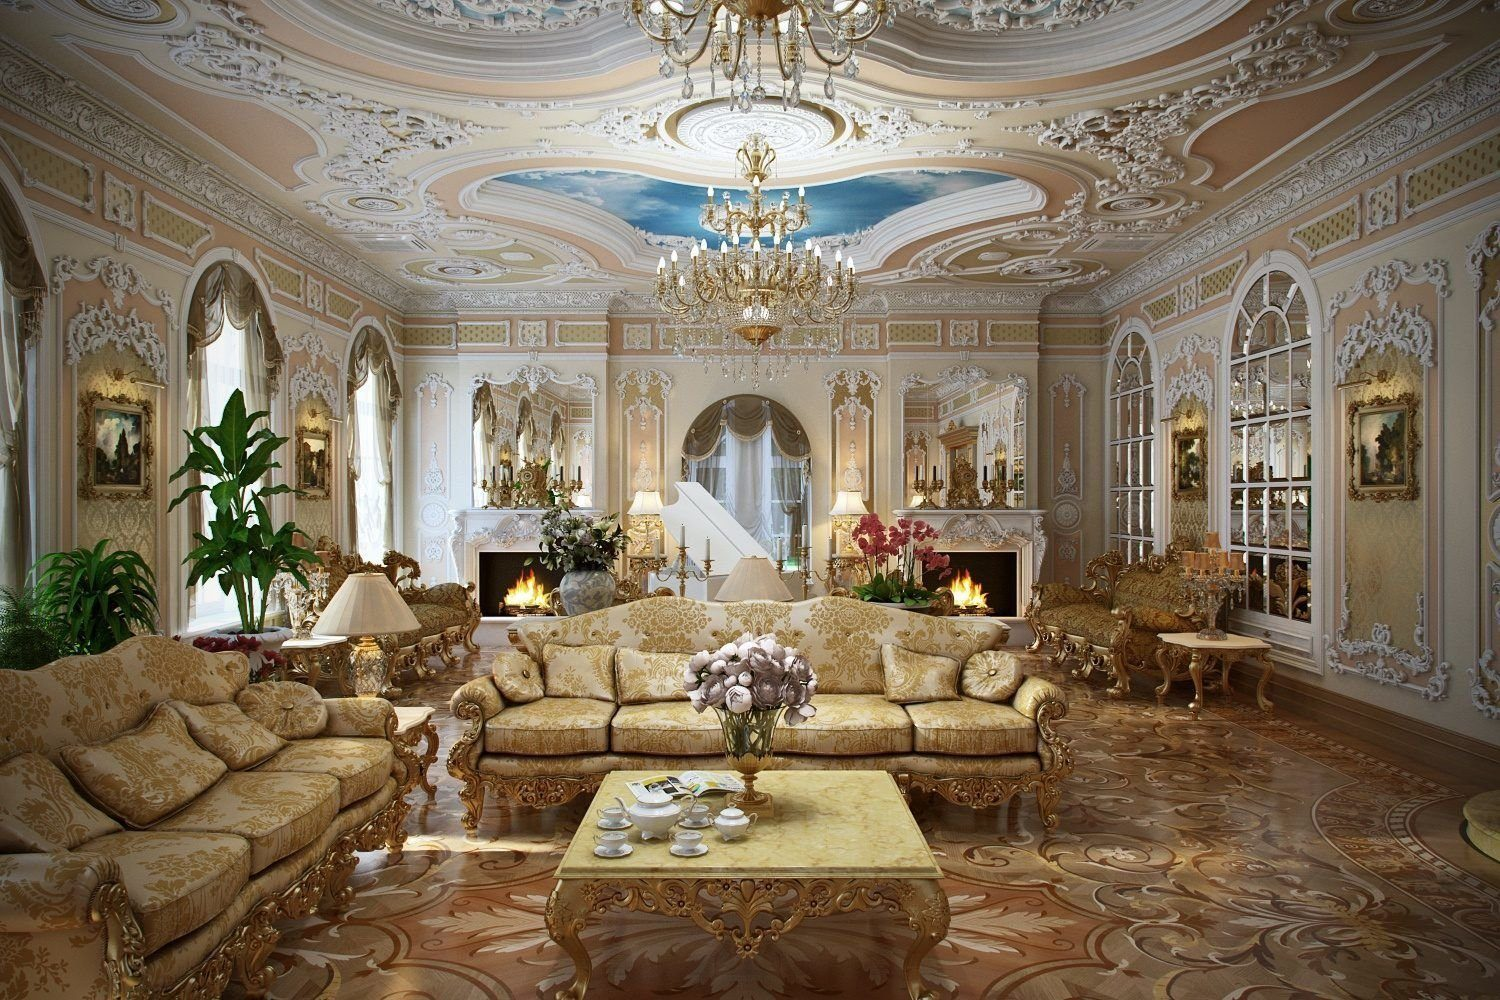 Baroque Living Room: Tips for Creating Chic Room at Home. Wavy lined living with bright furniture and decorations with golden tint